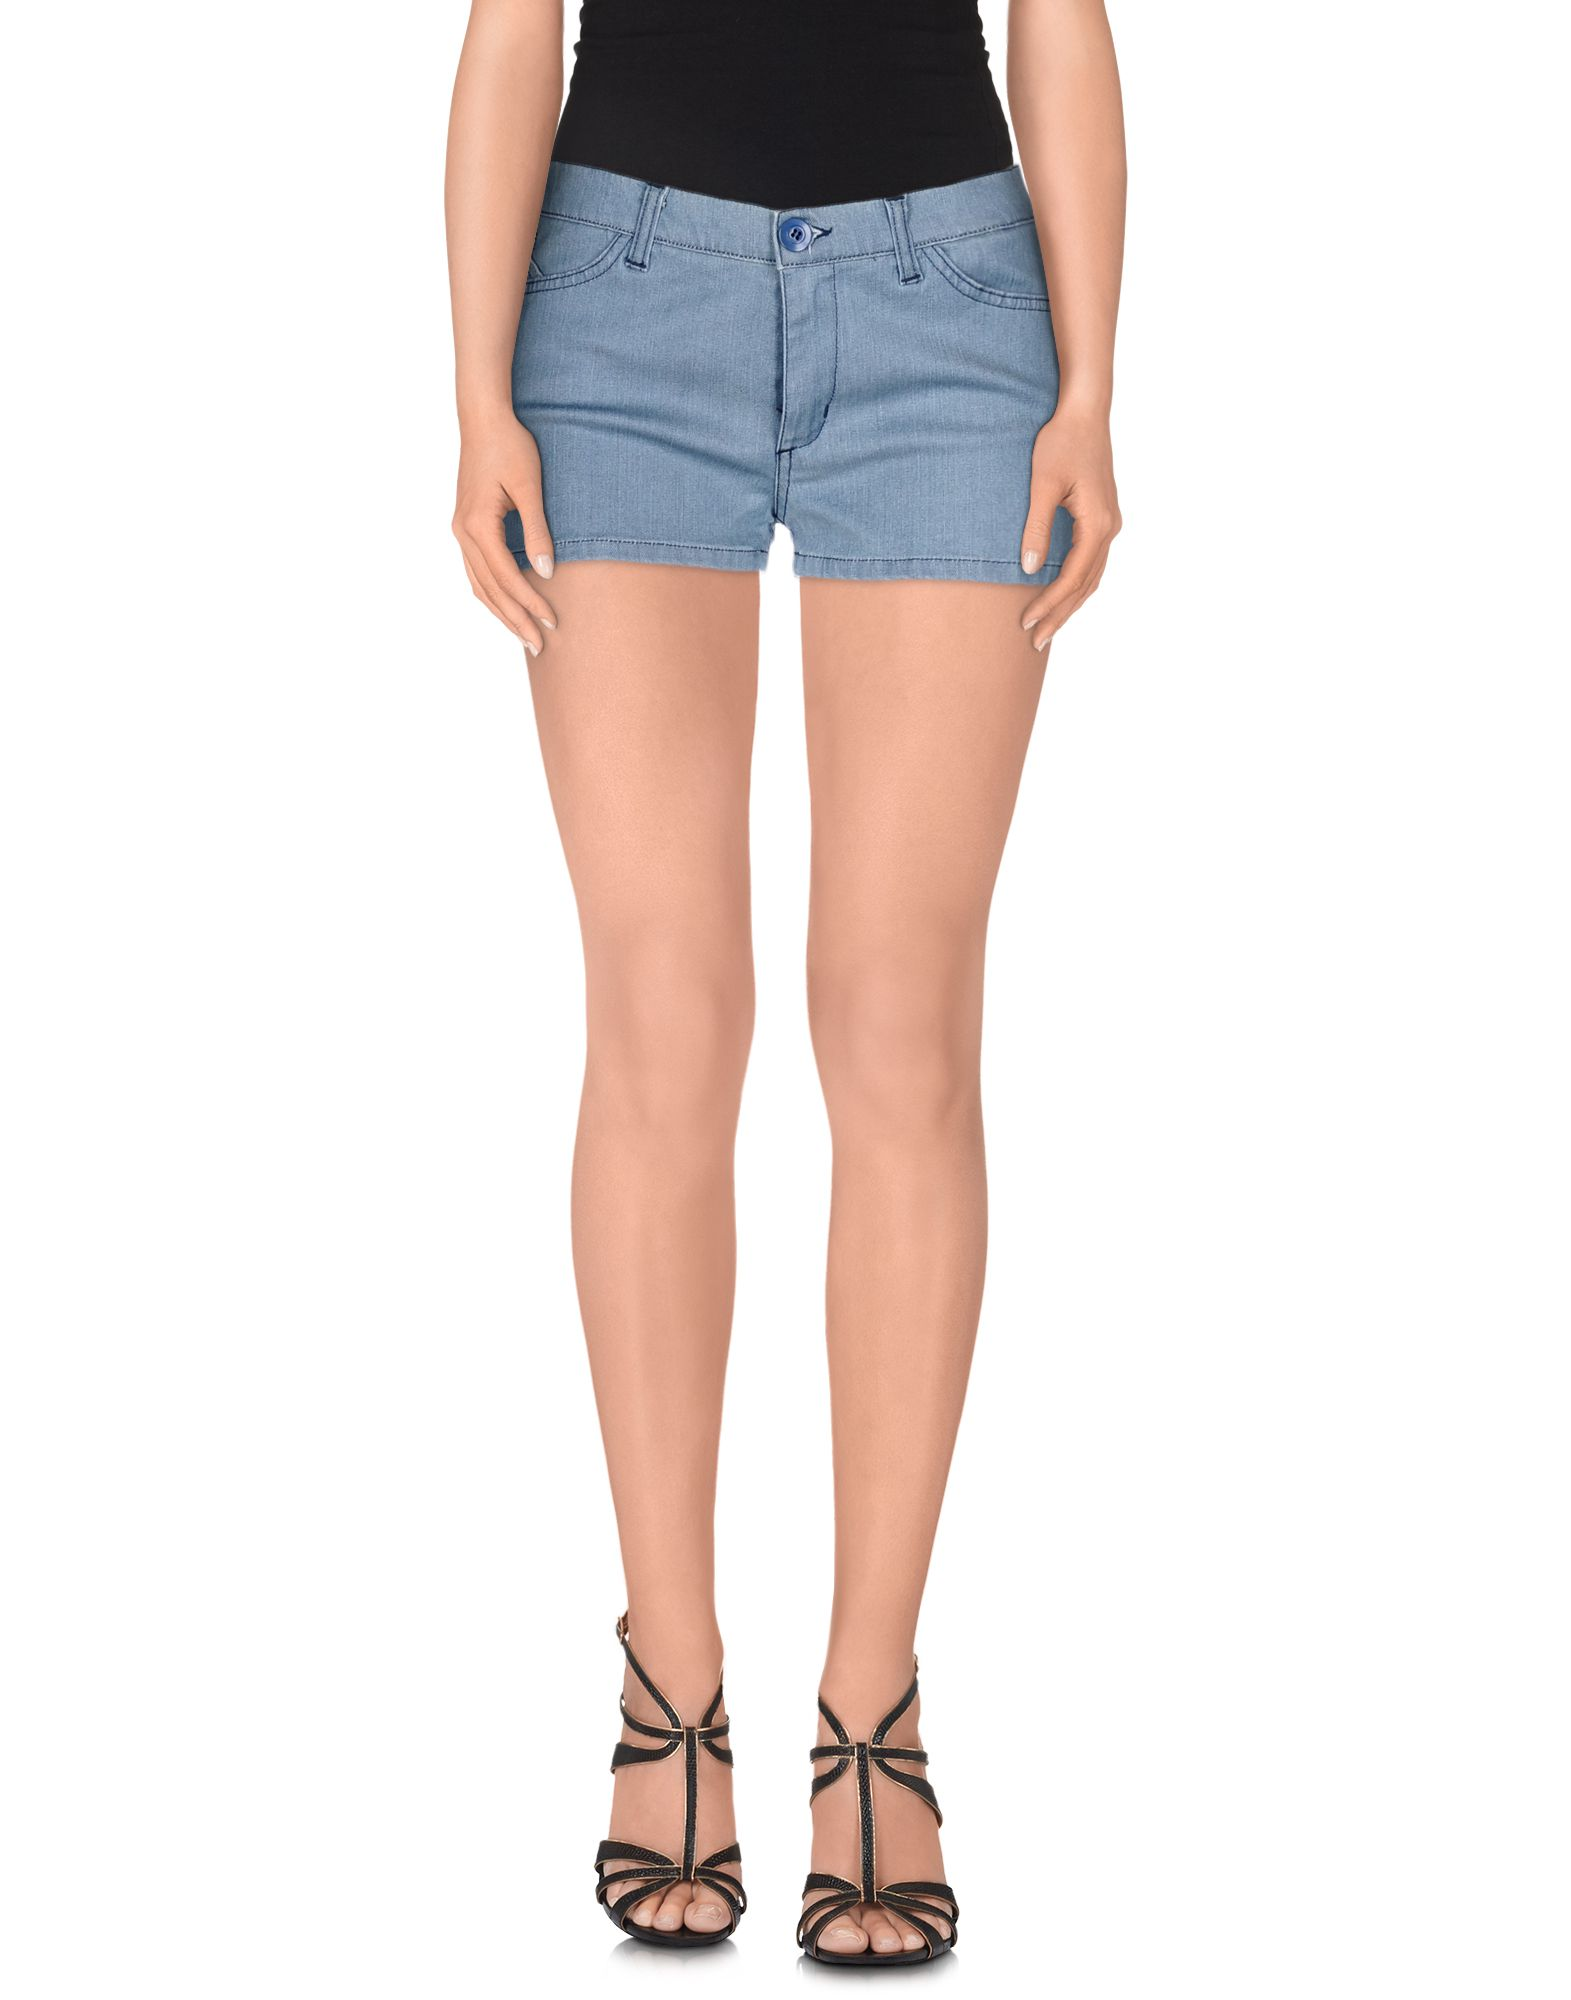 SUPERFINE Denim shorts